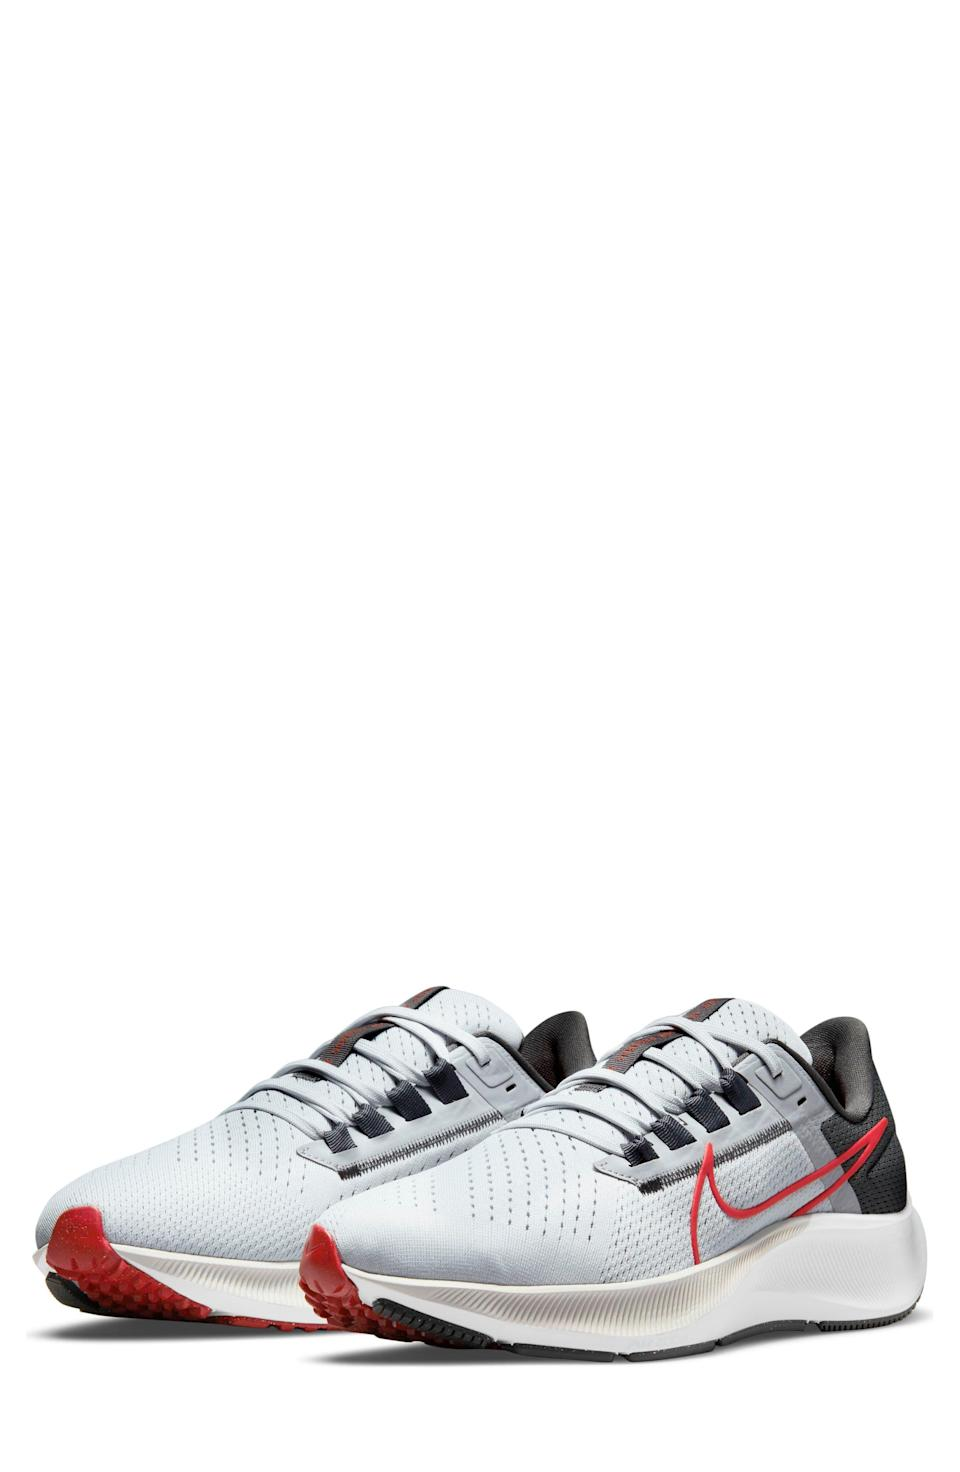 """<p><strong>NIKE</strong></p><p>nordstrom.com</p><p><a href=""""https://go.redirectingat.com?id=74968X1596630&url=https%3A%2F%2Fwww.nordstrom.com%2Fs%2Fnike-air-zoom-pegasus-38-running-shoe-men%2F5741682&sref=https%3A%2F%2Fwww.bestproducts.com%2Ffitness%2Fg37158206%2Fnordstroms-anniversary-sale-best-sneakers%2F"""" rel=""""nofollow noopener"""" target=""""_blank"""" data-ylk=""""slk:BUY IT HERE"""" class=""""link rapid-noclick-resp"""">BUY IT HERE</a></p><p><del>$120<br></del><strong>$89.90</strong></p><p>If the mere thought of lacing up a pair of sneakers feels somewhat claustrophobic, feast your eyes on Nike's Air Zoom Pegasus 38 sneakers. This pair is designed with more room in the forefront and toes, making your stride more cozy.</p>"""